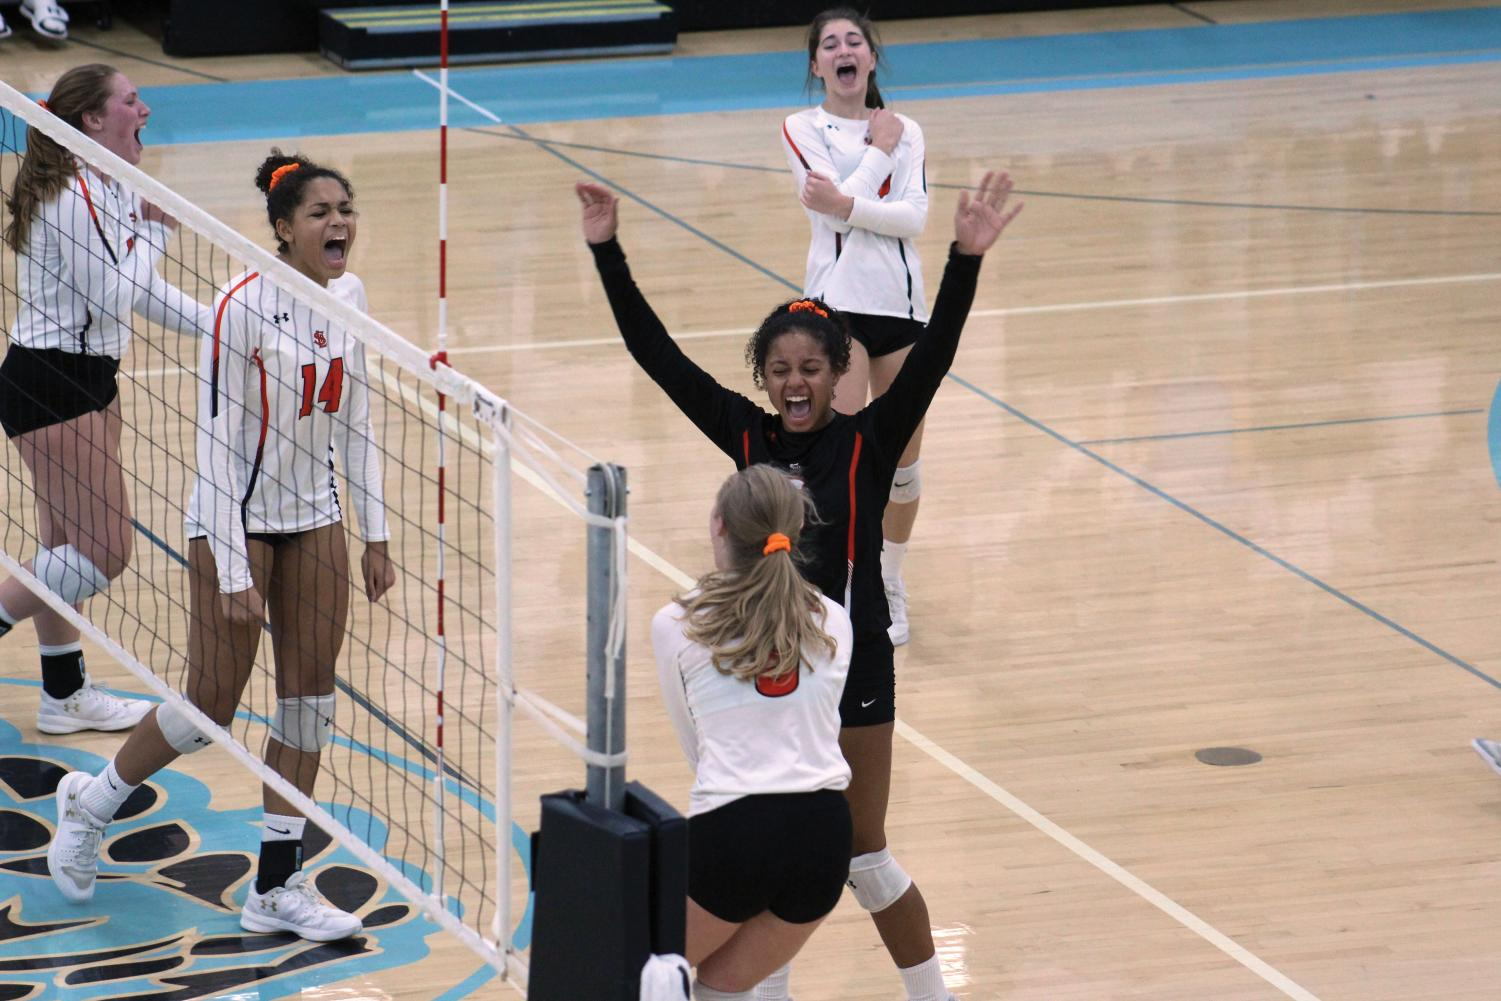 Senior Maddy McIntosh and sophomore Raegan Alexander celebrate with their teammates after winning a point against Bloomington Jefferson Oct. 25. The team moved on to play Edina in the semi-finals on Oct. 30.